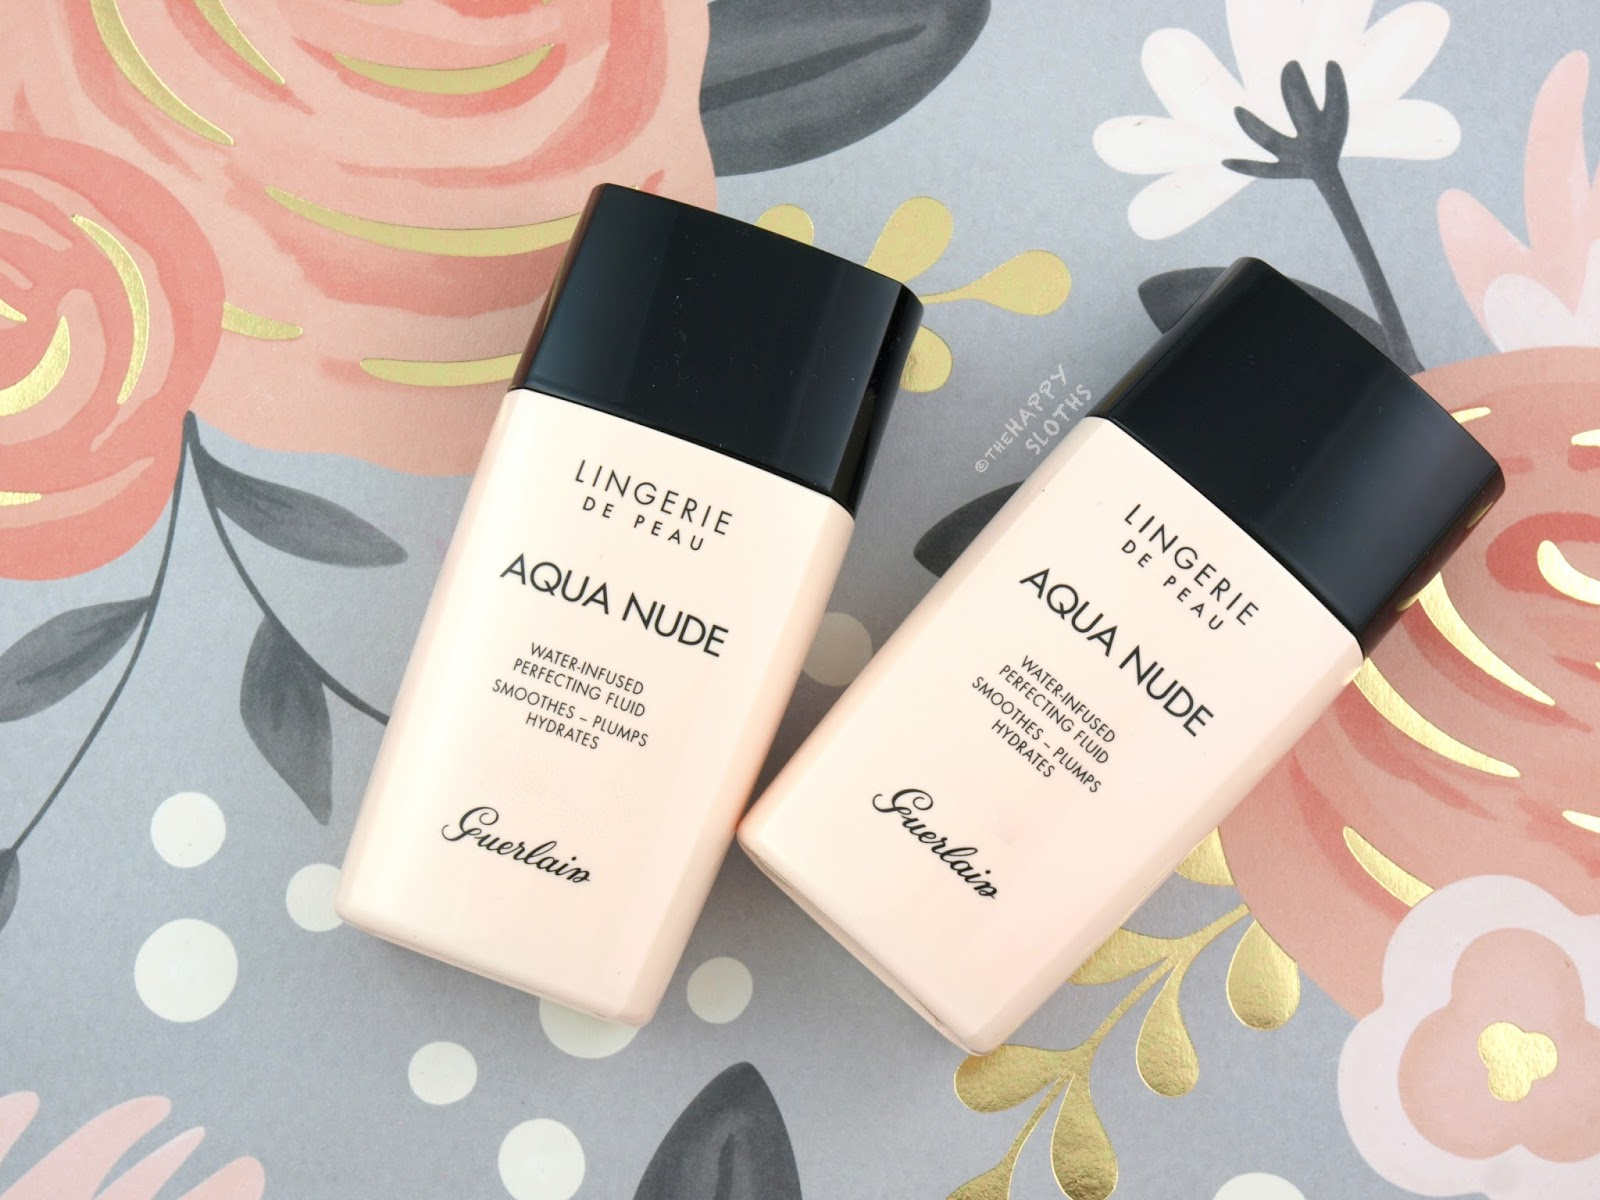 Guerlain Lingerie de Peau Aqua Nude Foundation: Review and Swatches